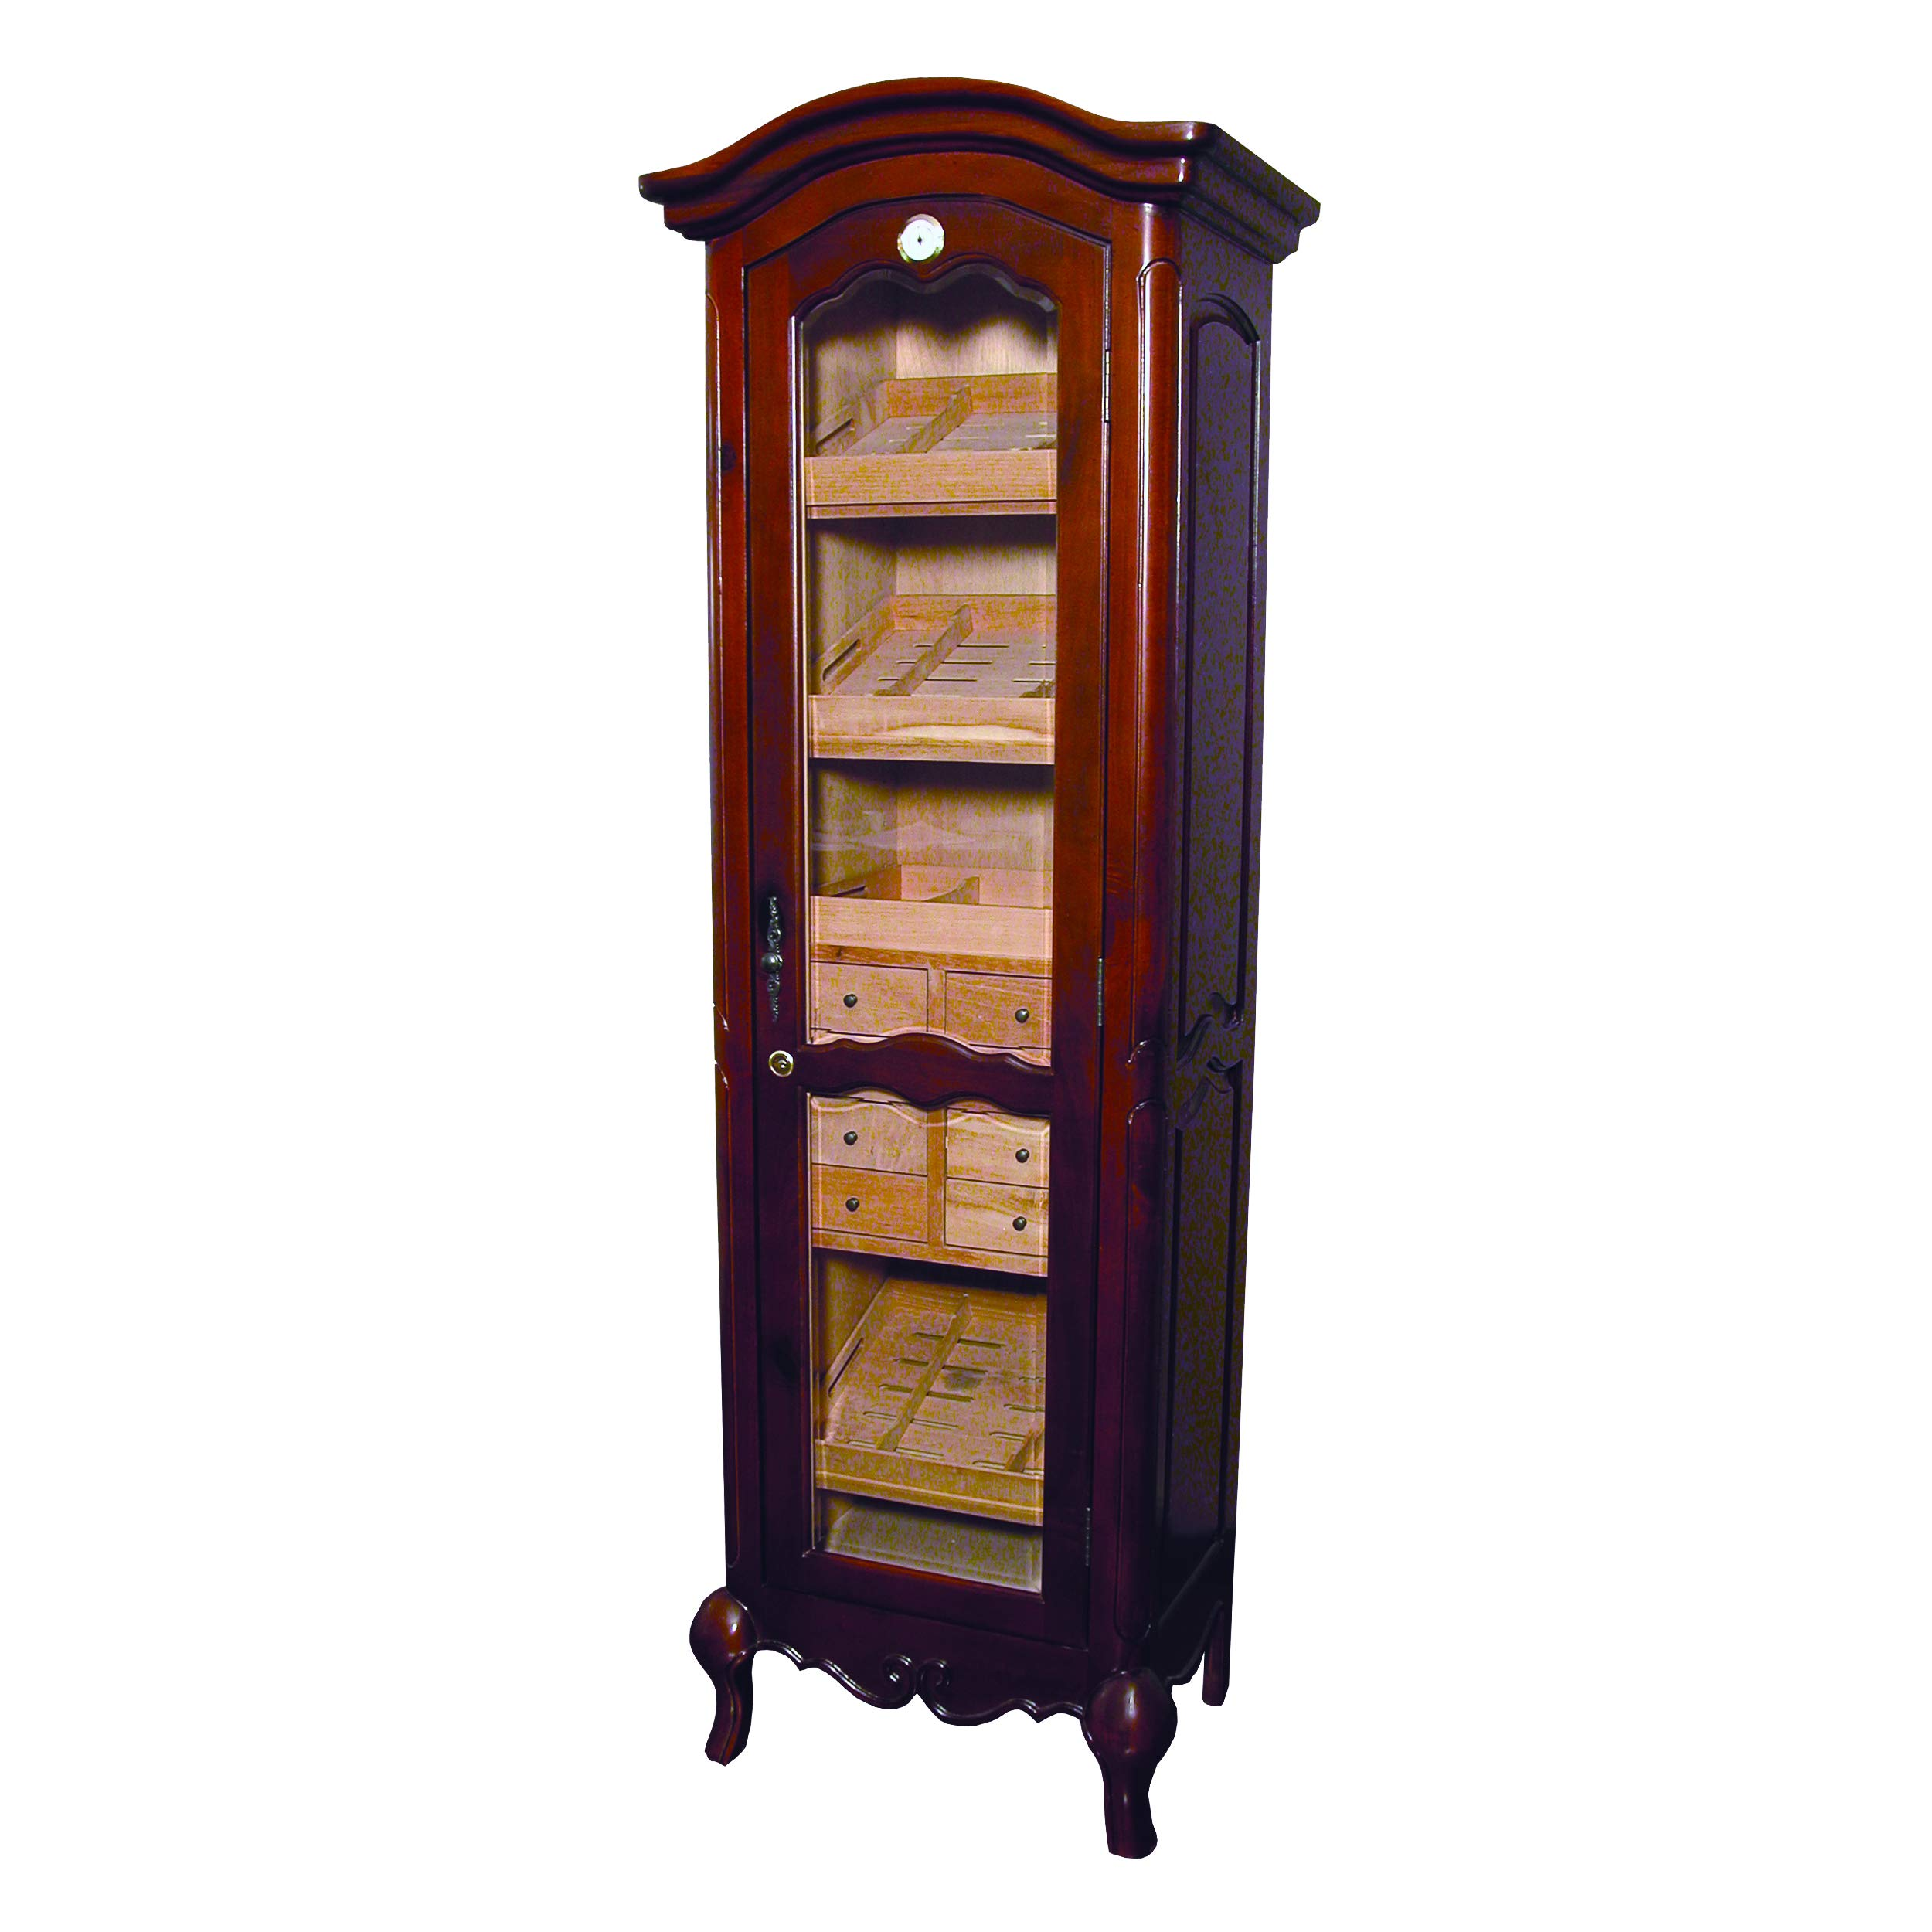 Quality Importers Trading Antique Tower Humidor, Cigar Cabinet Holds Up to 3000 Cigars, 4 Shelves, 8 Drawers, 2 Interior A/C Outlets, Distressed French Walnut Finish